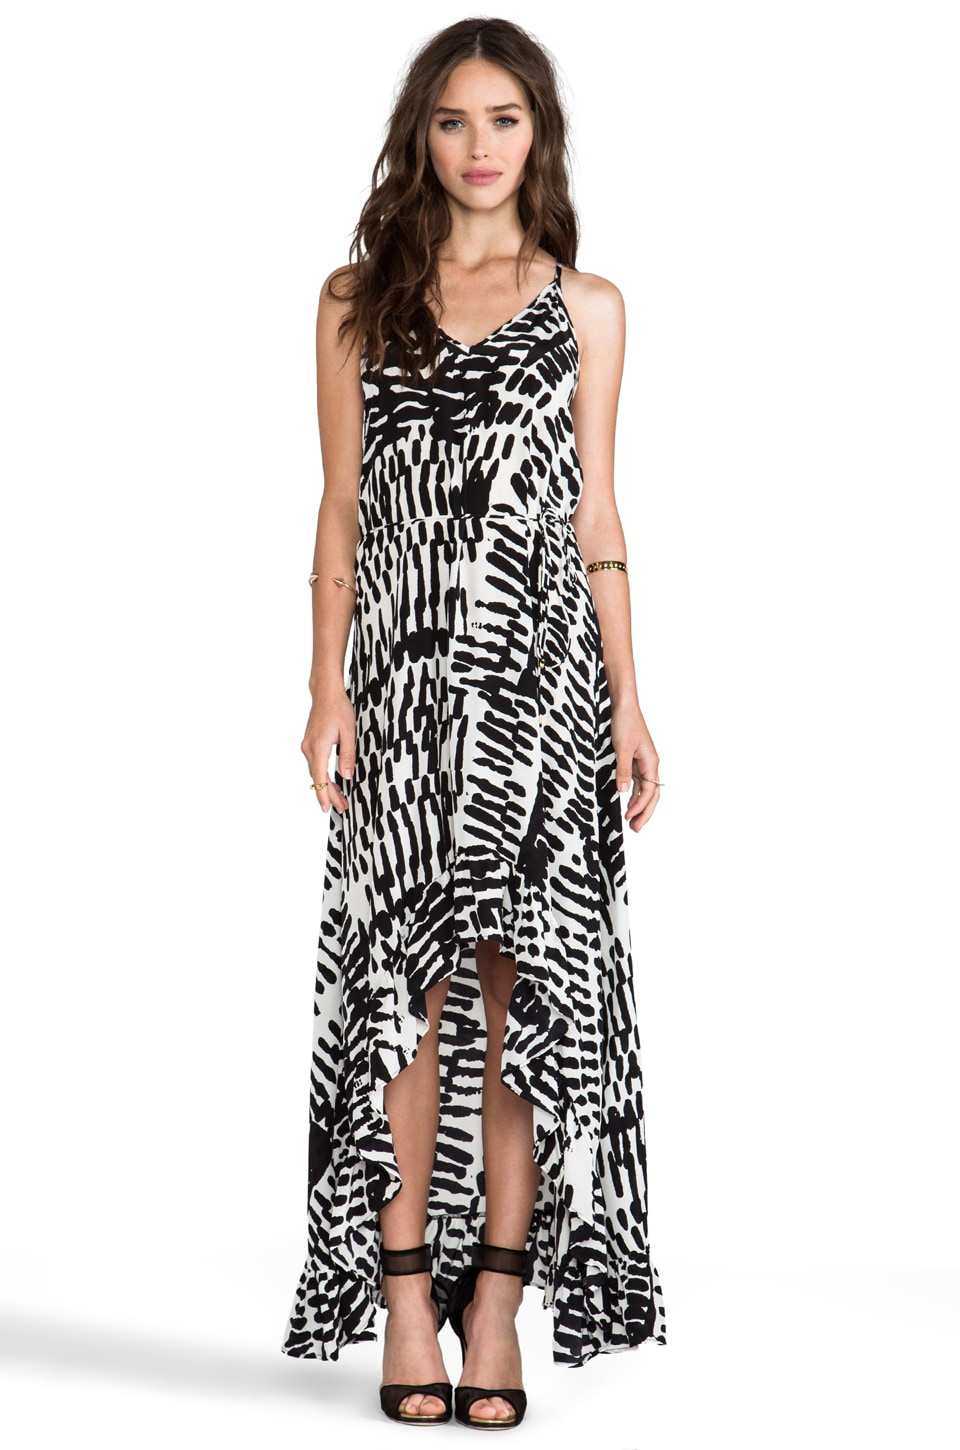 Karina Grimaldi EXCLUSIVE Romantic Print Maxi Dress in Maze